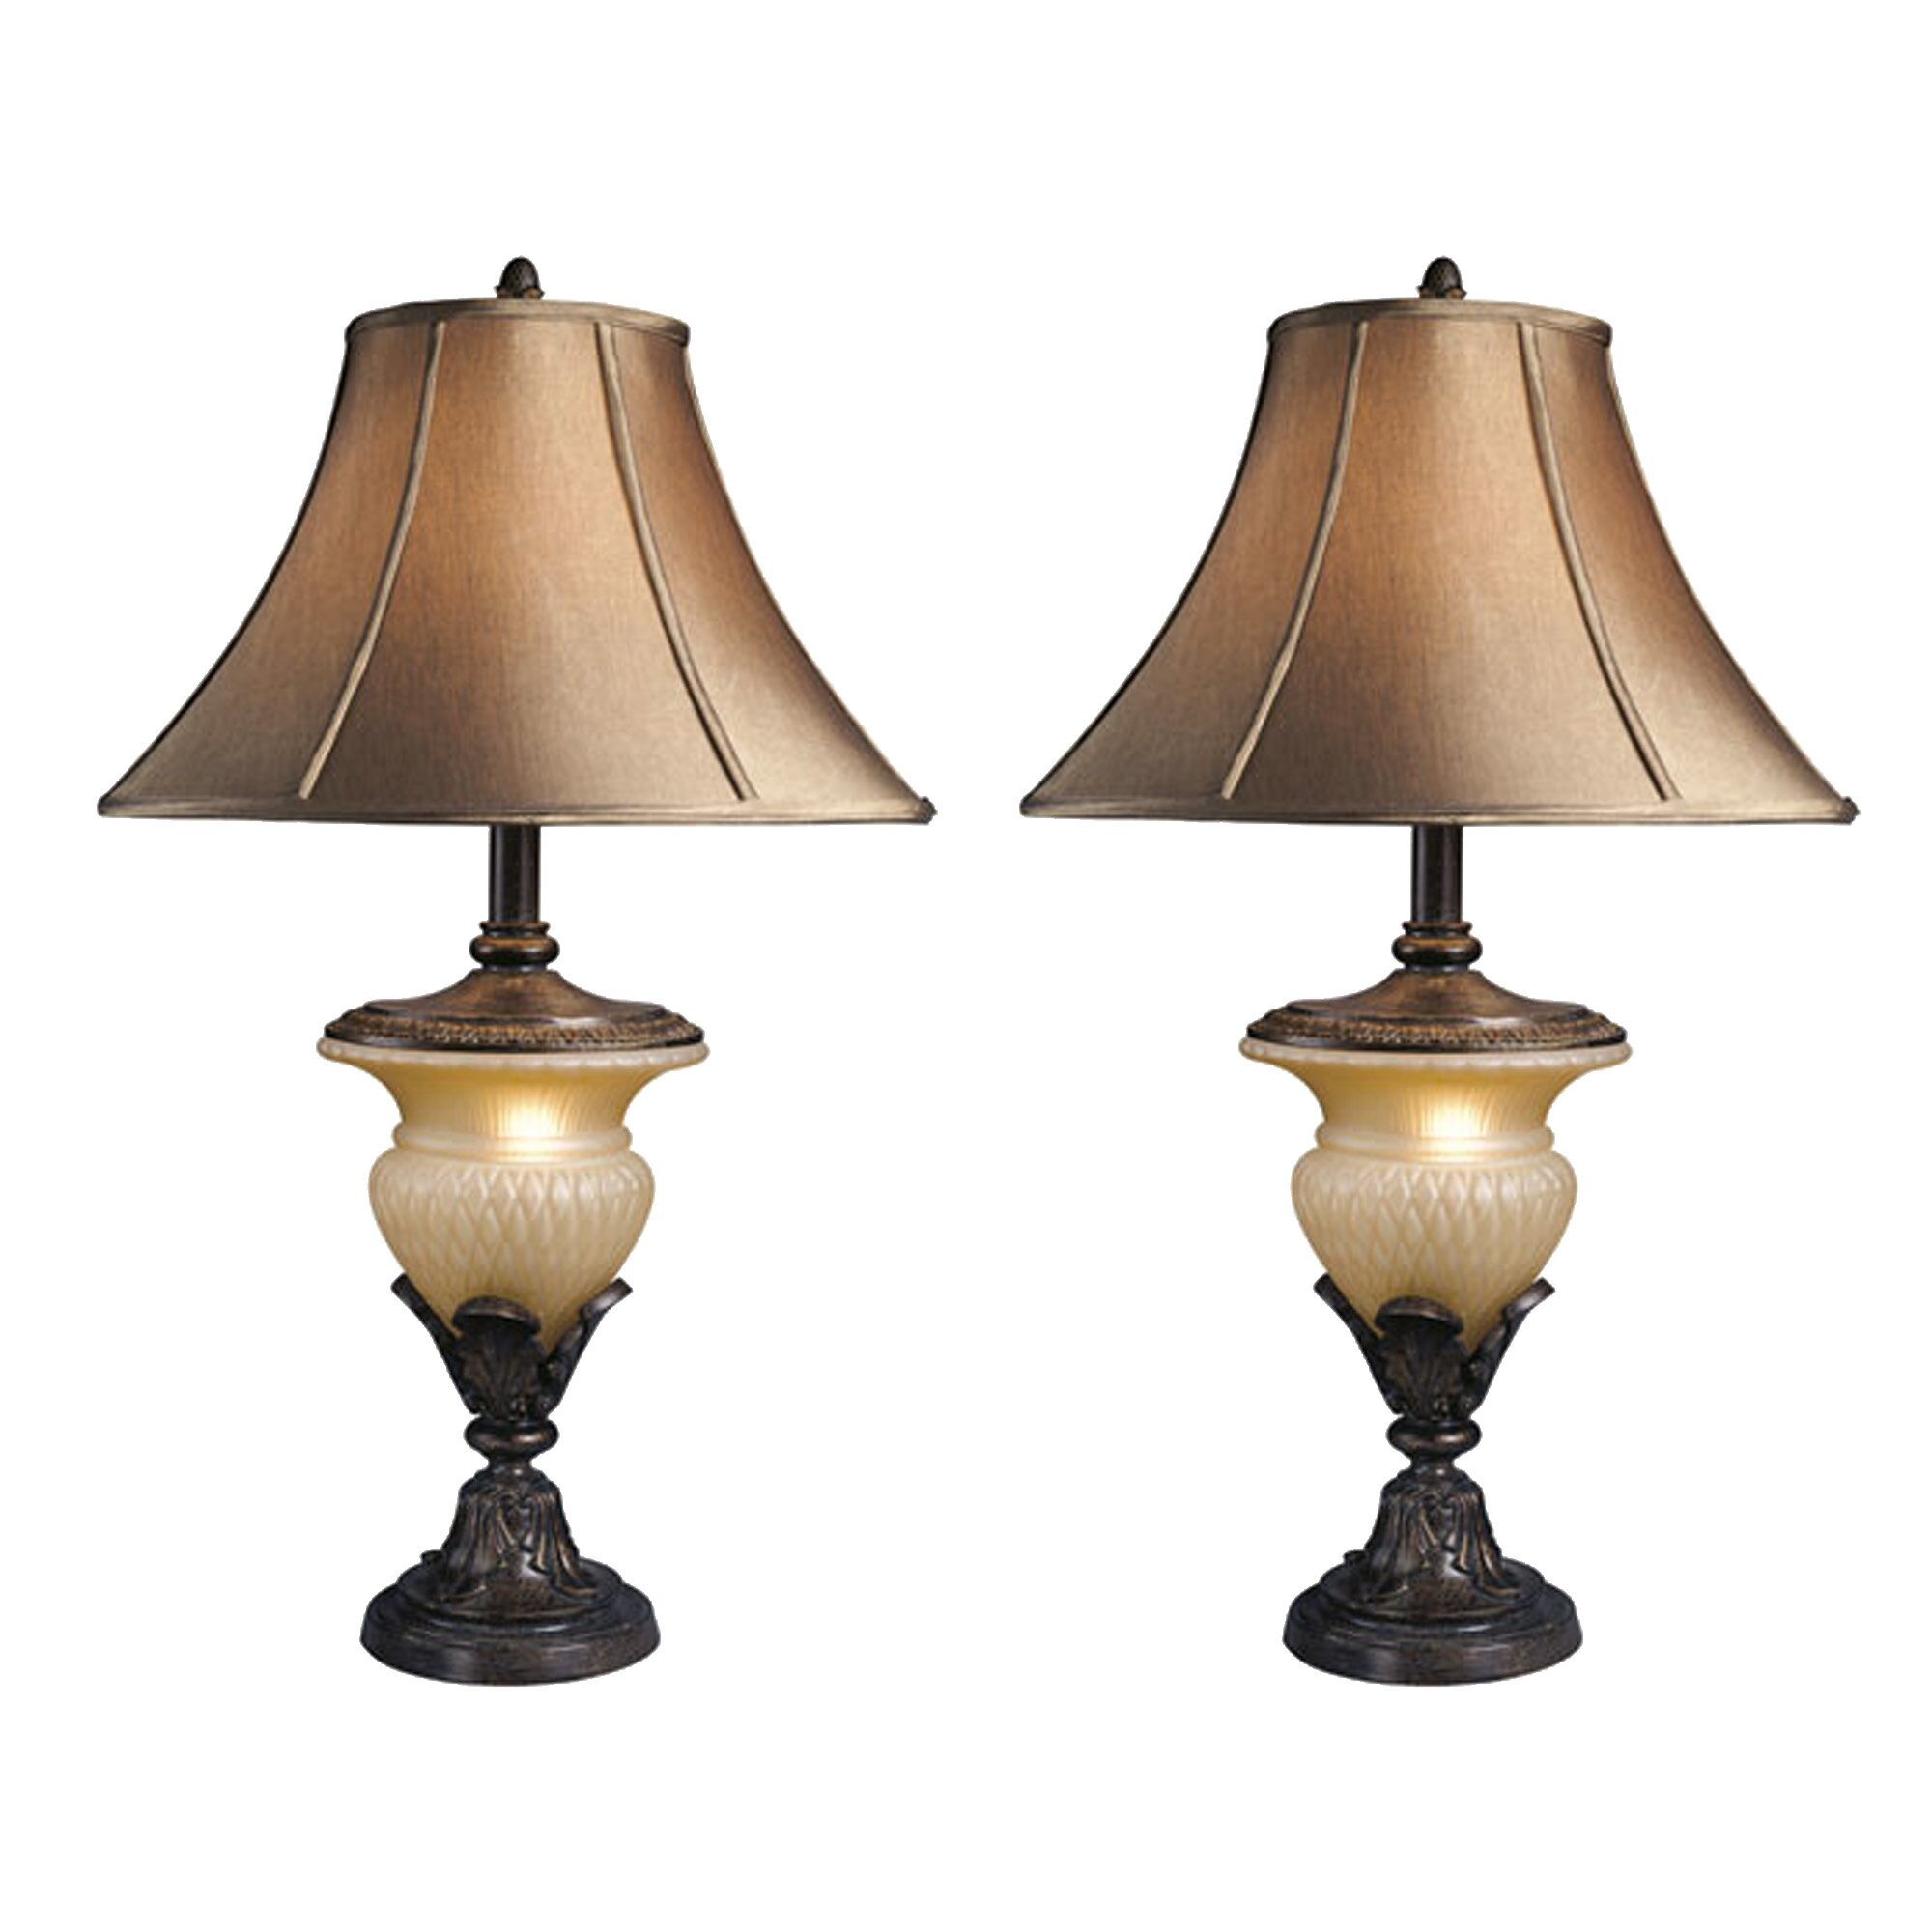 ... Bedside Lamps; Wayfair Table Lamps Canada By Signature Design By Ashley  Danielle 34 Quot Table Lamps Set ...